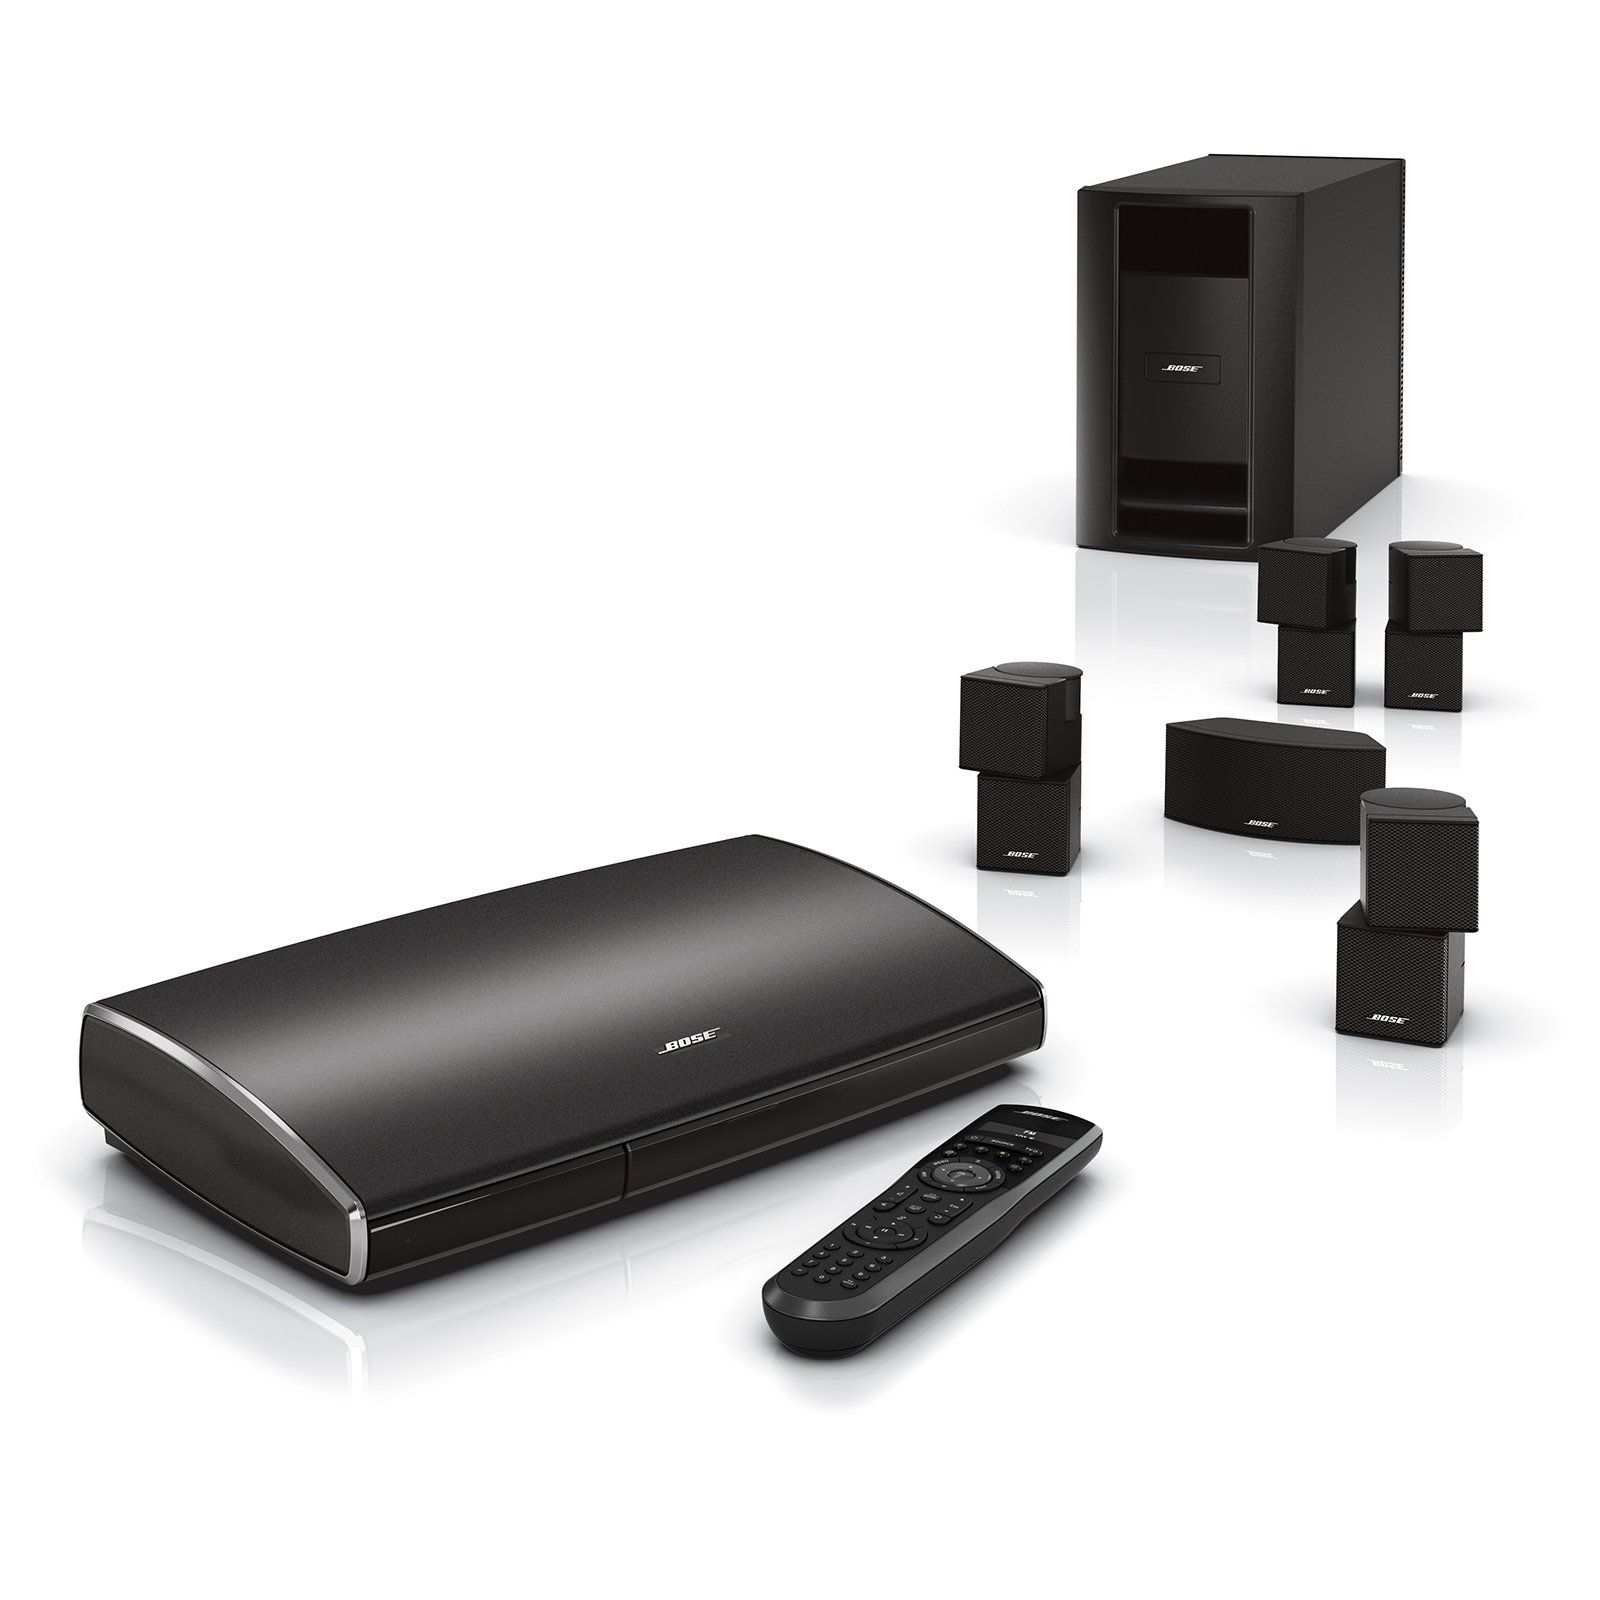 Bose Lifestyle 535 Series II Home Entertainment System Discontinued